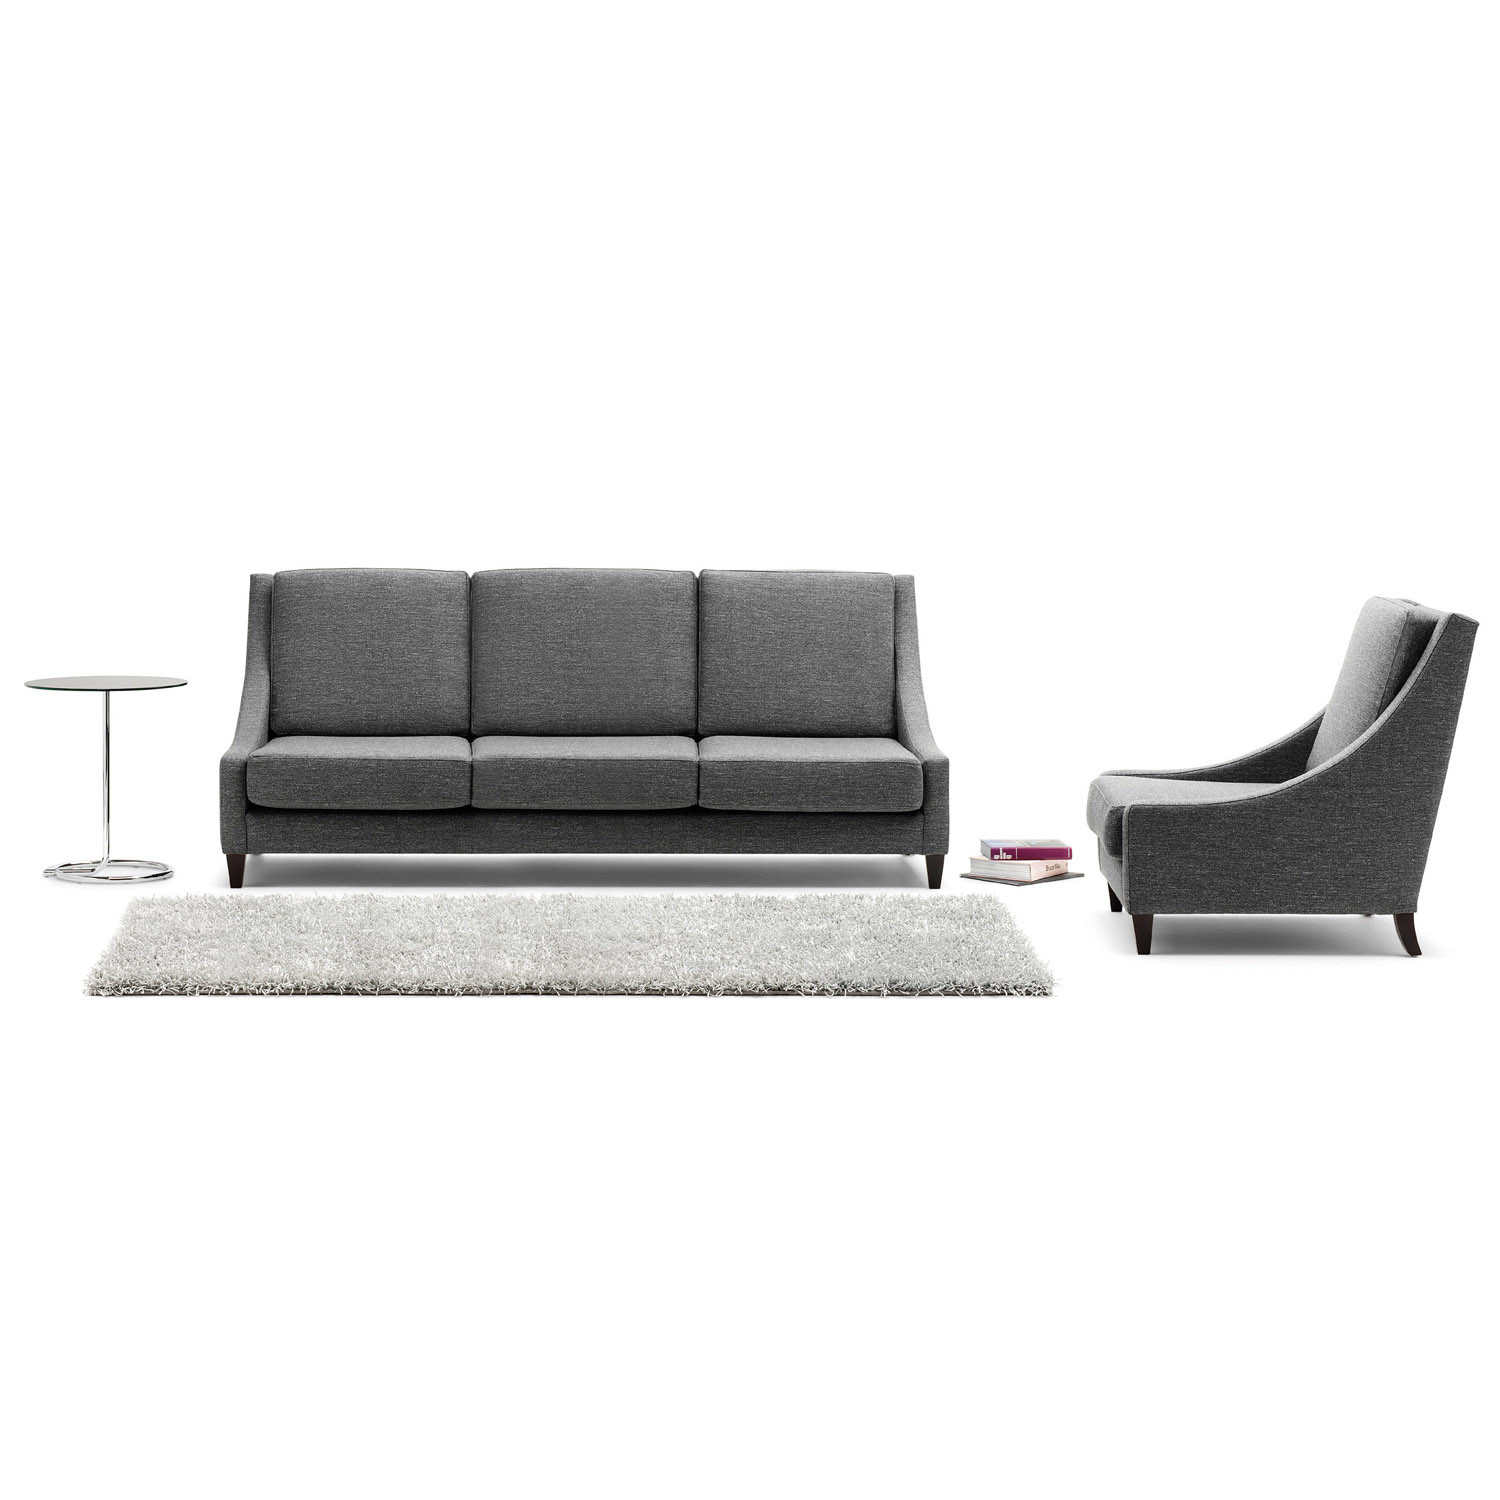 Vernon Sofa and Armchair by Lyndon Design